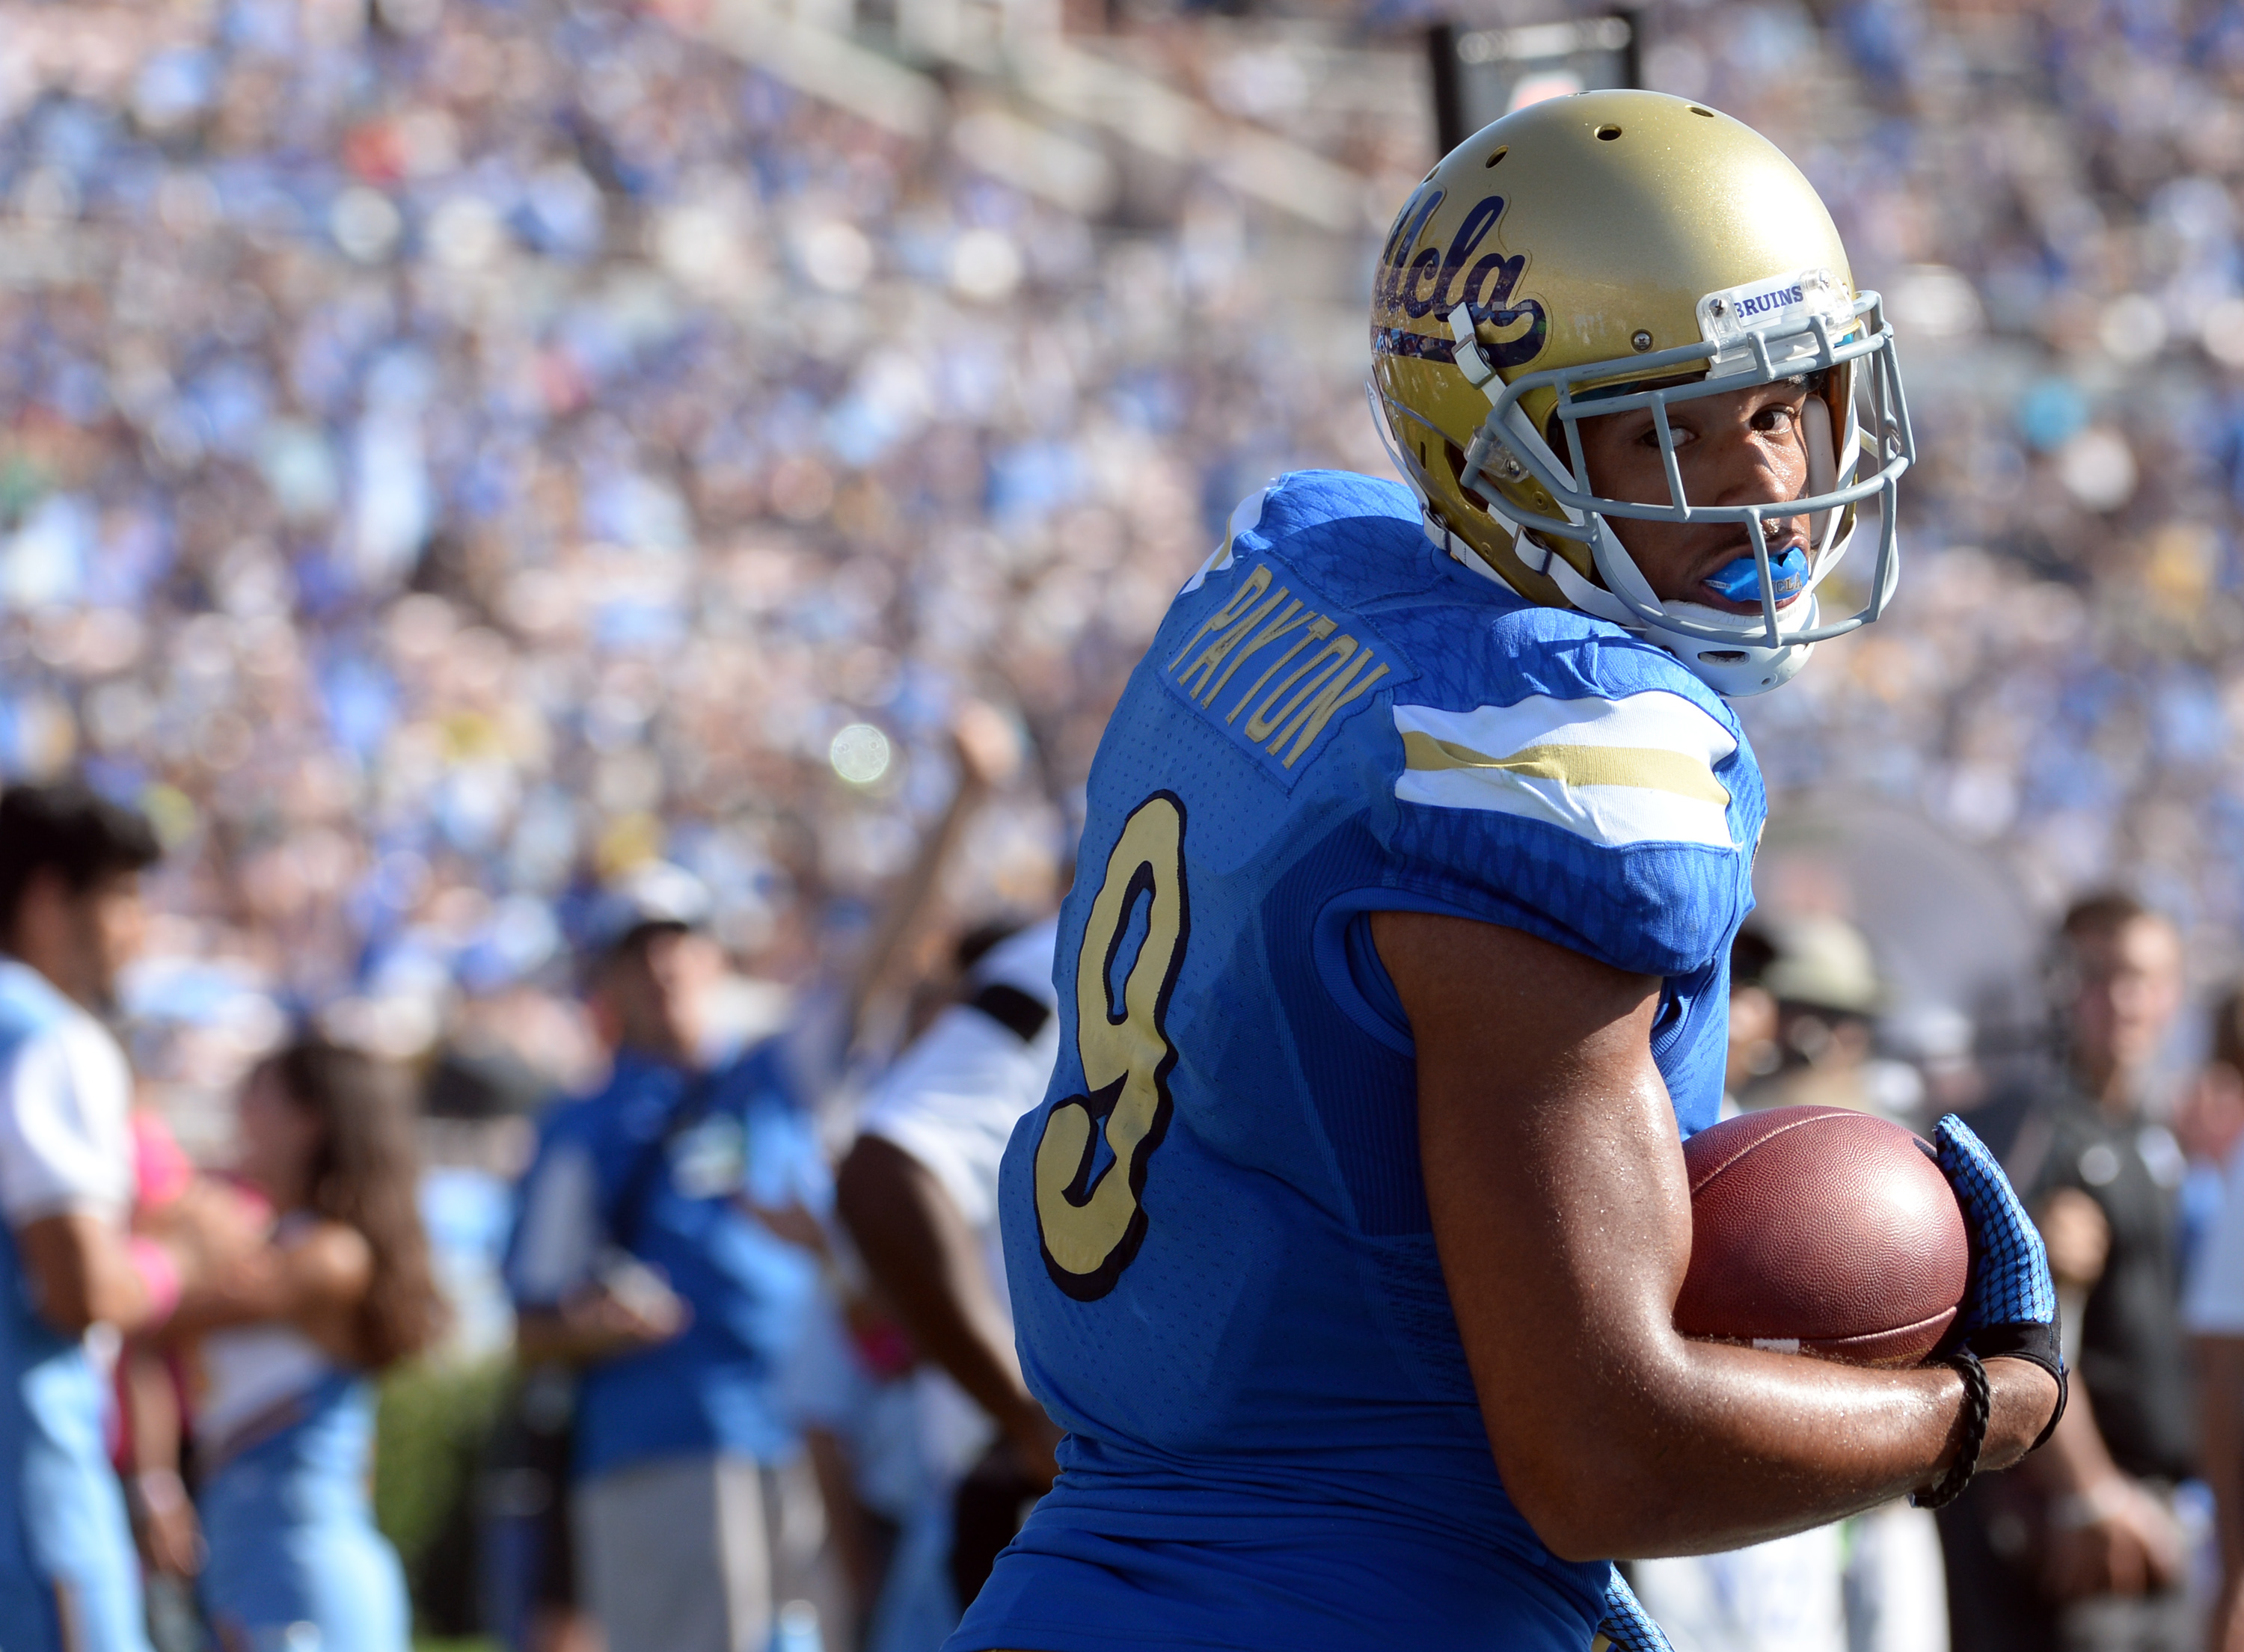 UCLA receiver Jordan Payton was one of two Bruins to accept invitations to the Senior Bowl. (Keith Birmingham/Staff)